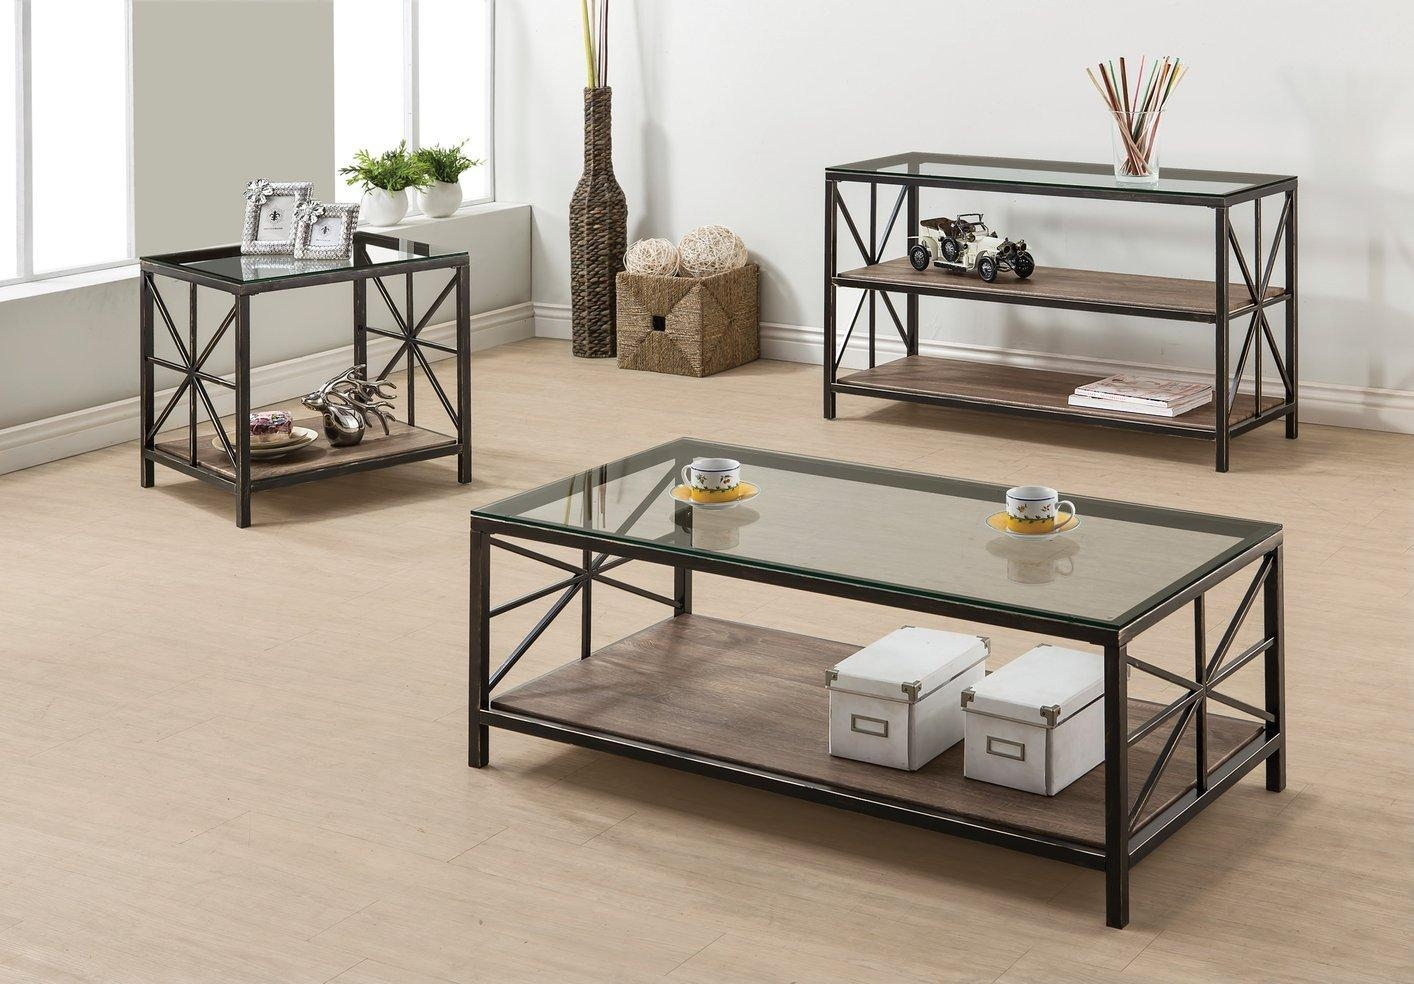 Glass Sofa Table Room | Med Art Home Design Posters Throughout Metal Glass Sofa Tables (View 19 of 22)